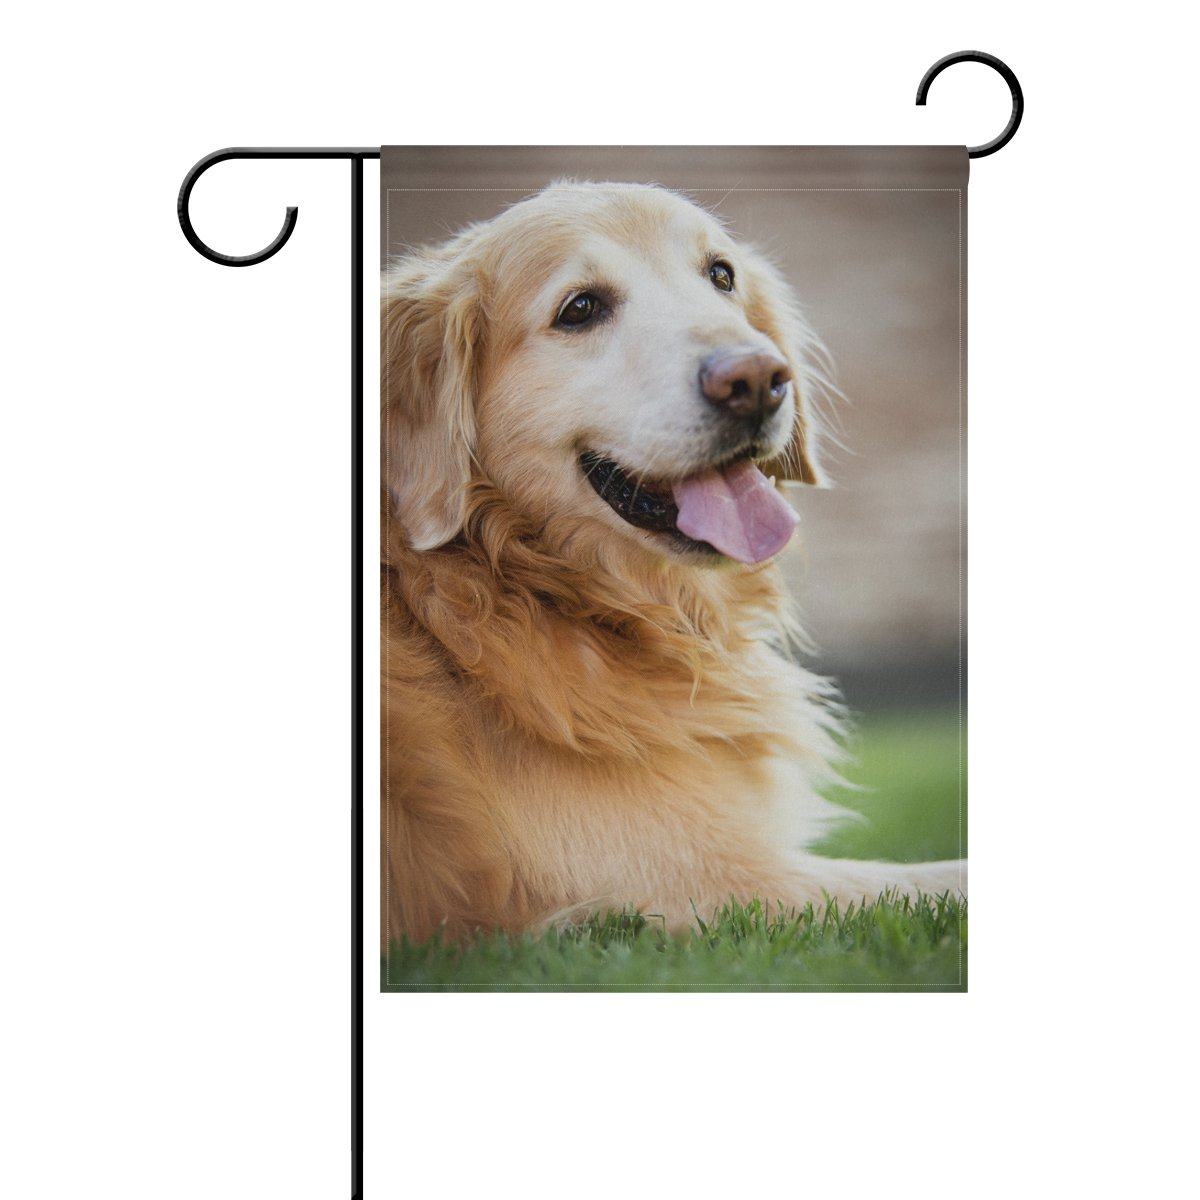 BlueViper Golden Retriever Dog Garden Flag Banner 12 x 18 Inch Decorative Garden Flag for Outdoor Lawn and Garden Home Décor Double-Sided